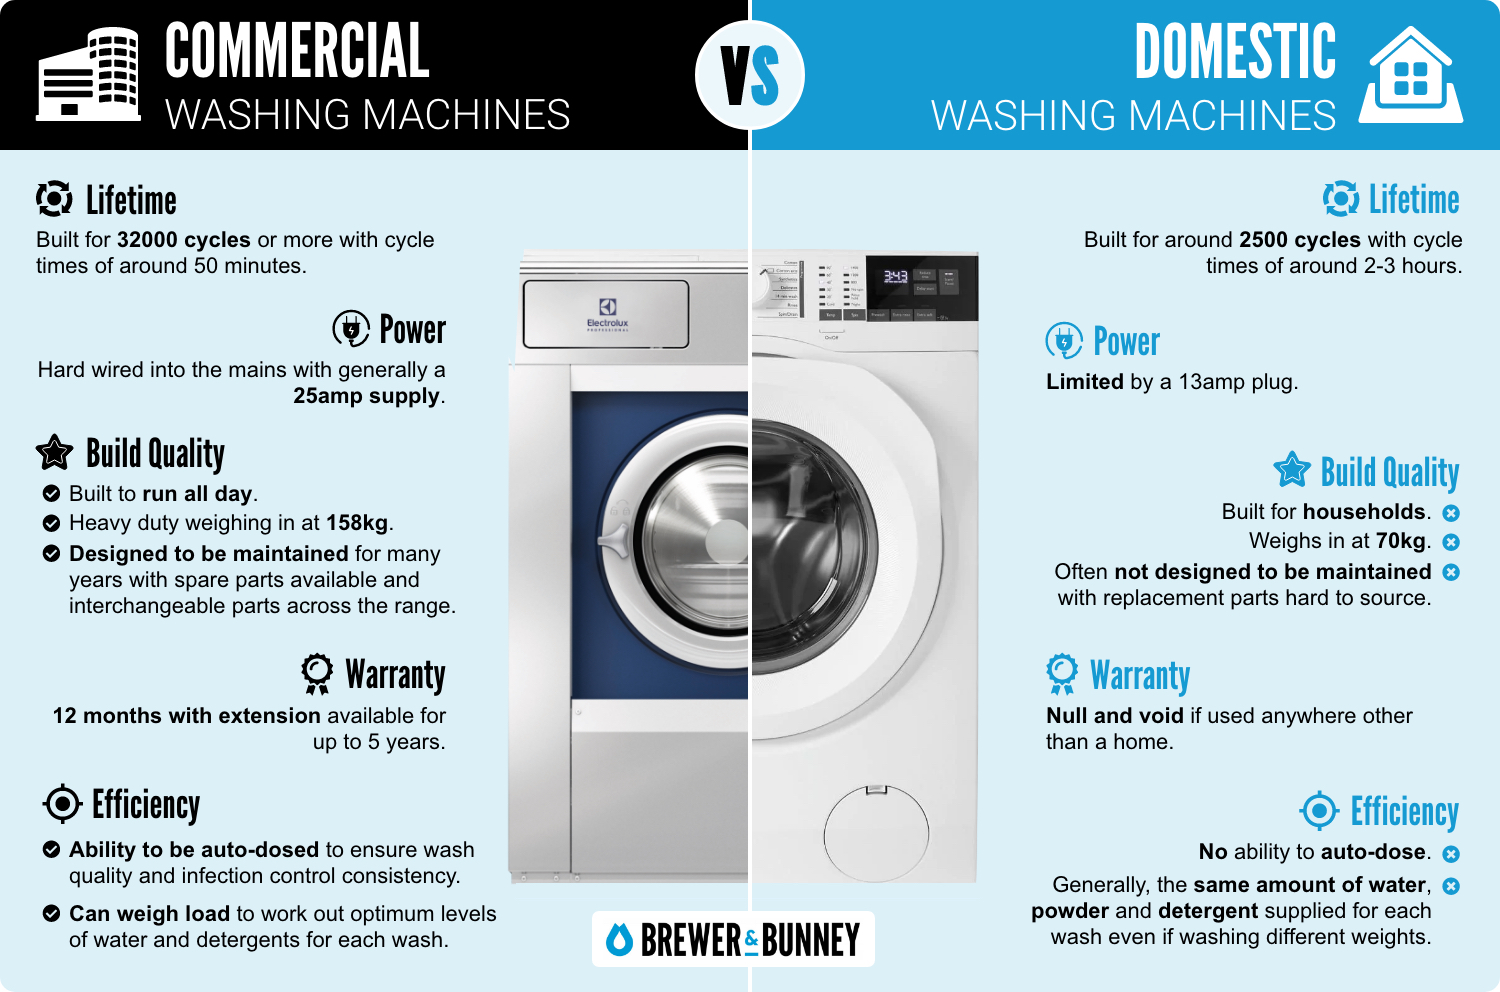 Brewer and Bunney rebranded infographic